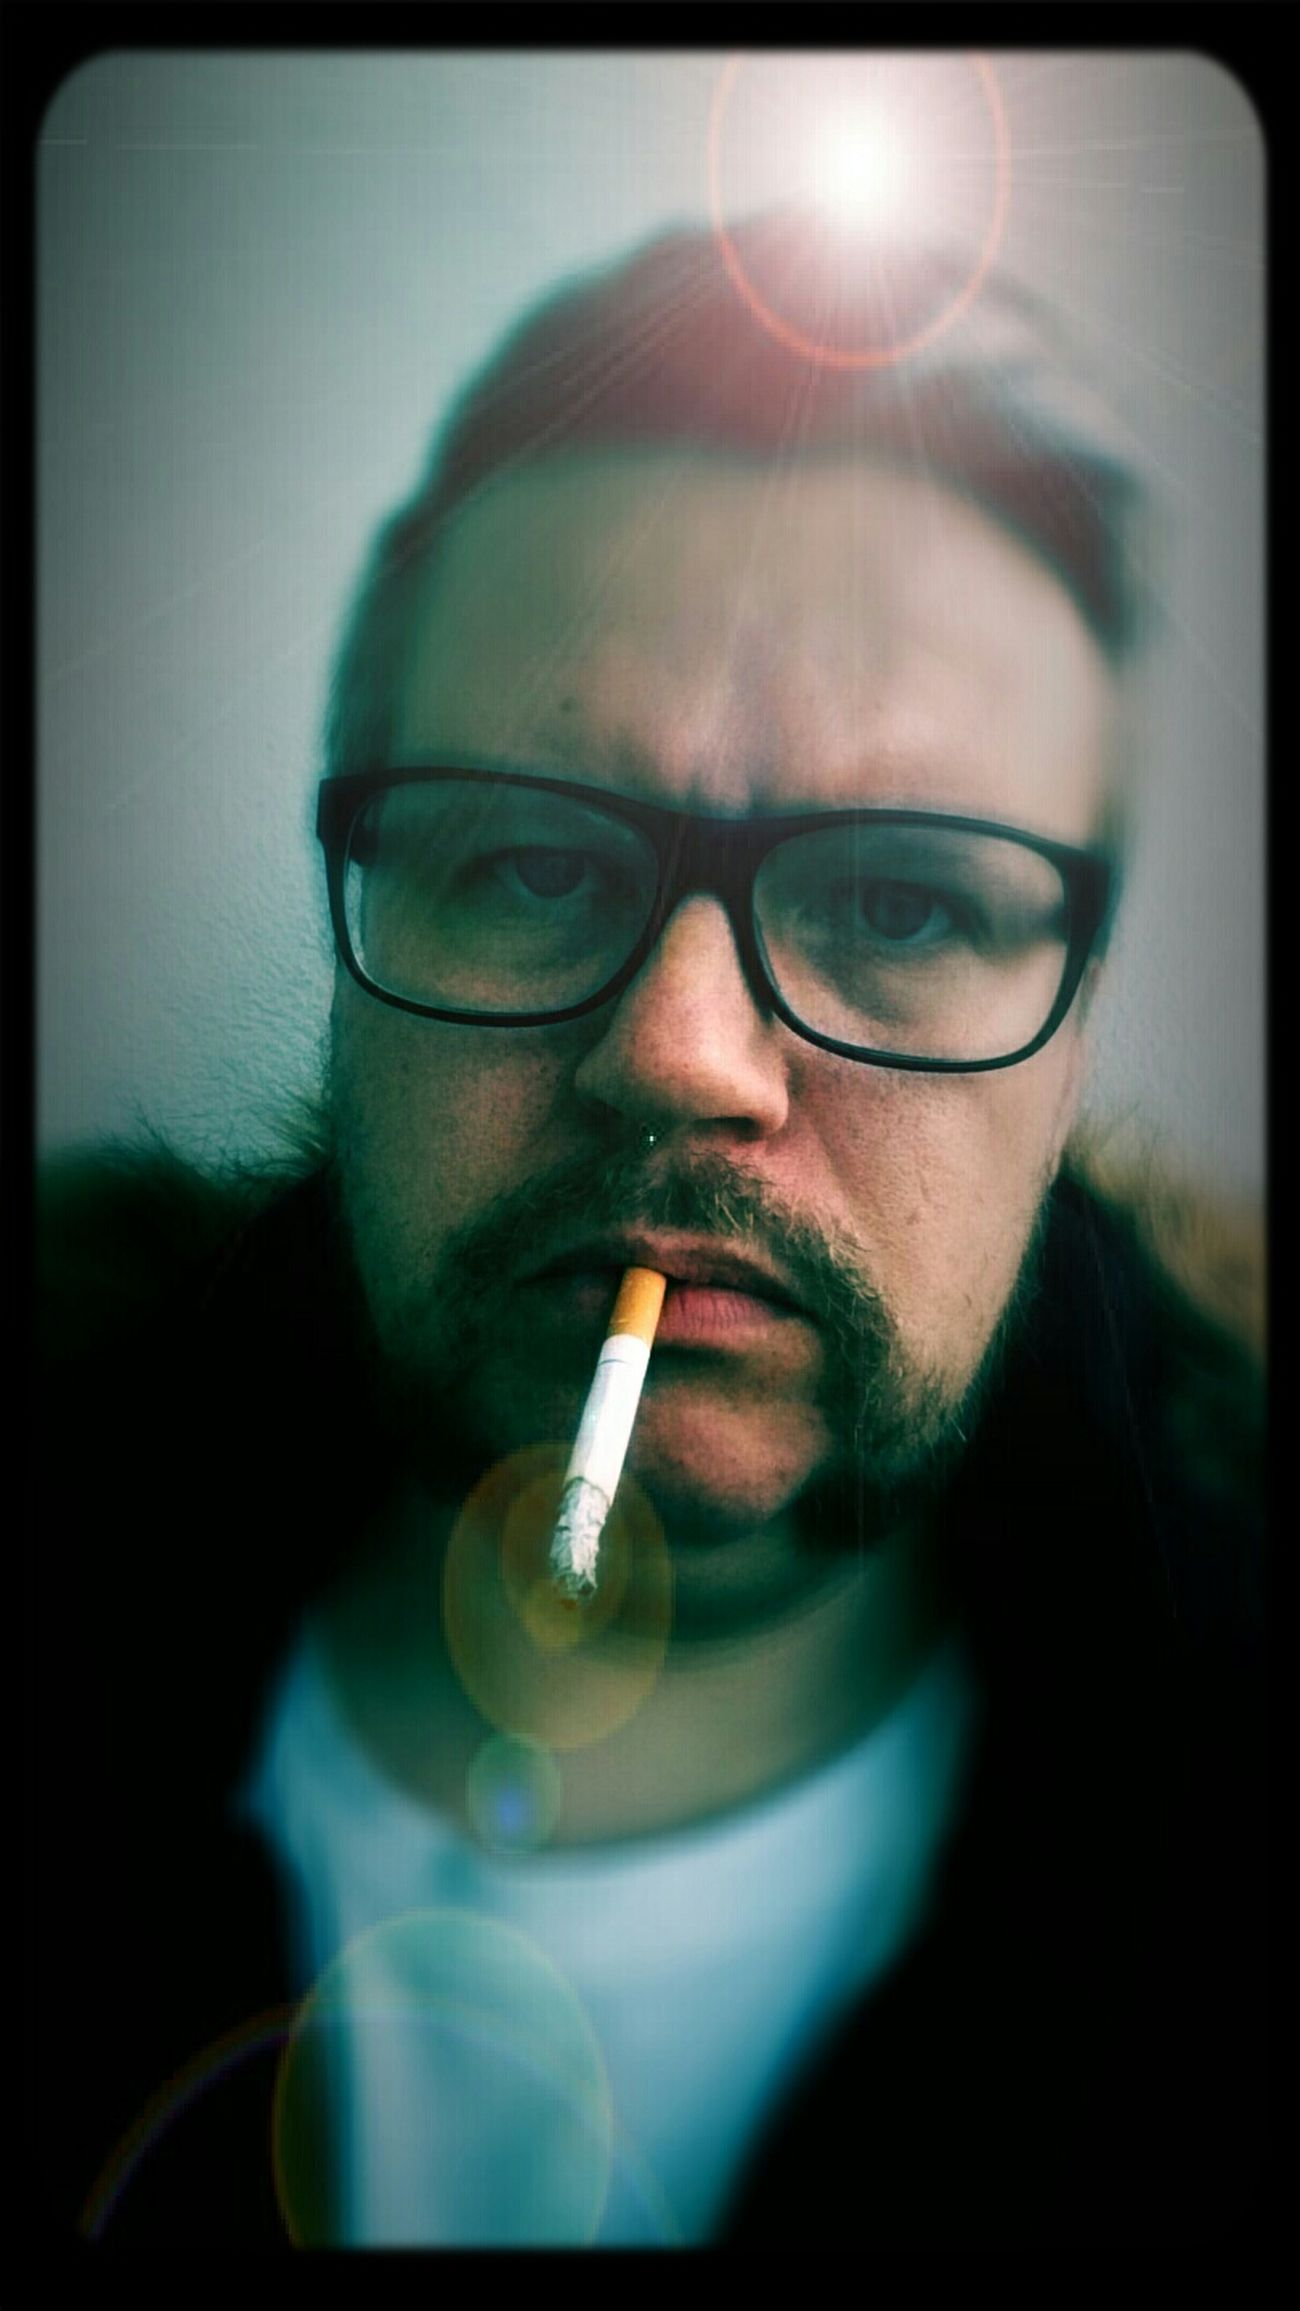 Selfie Smoking Trying To Be Cool Just For Fun